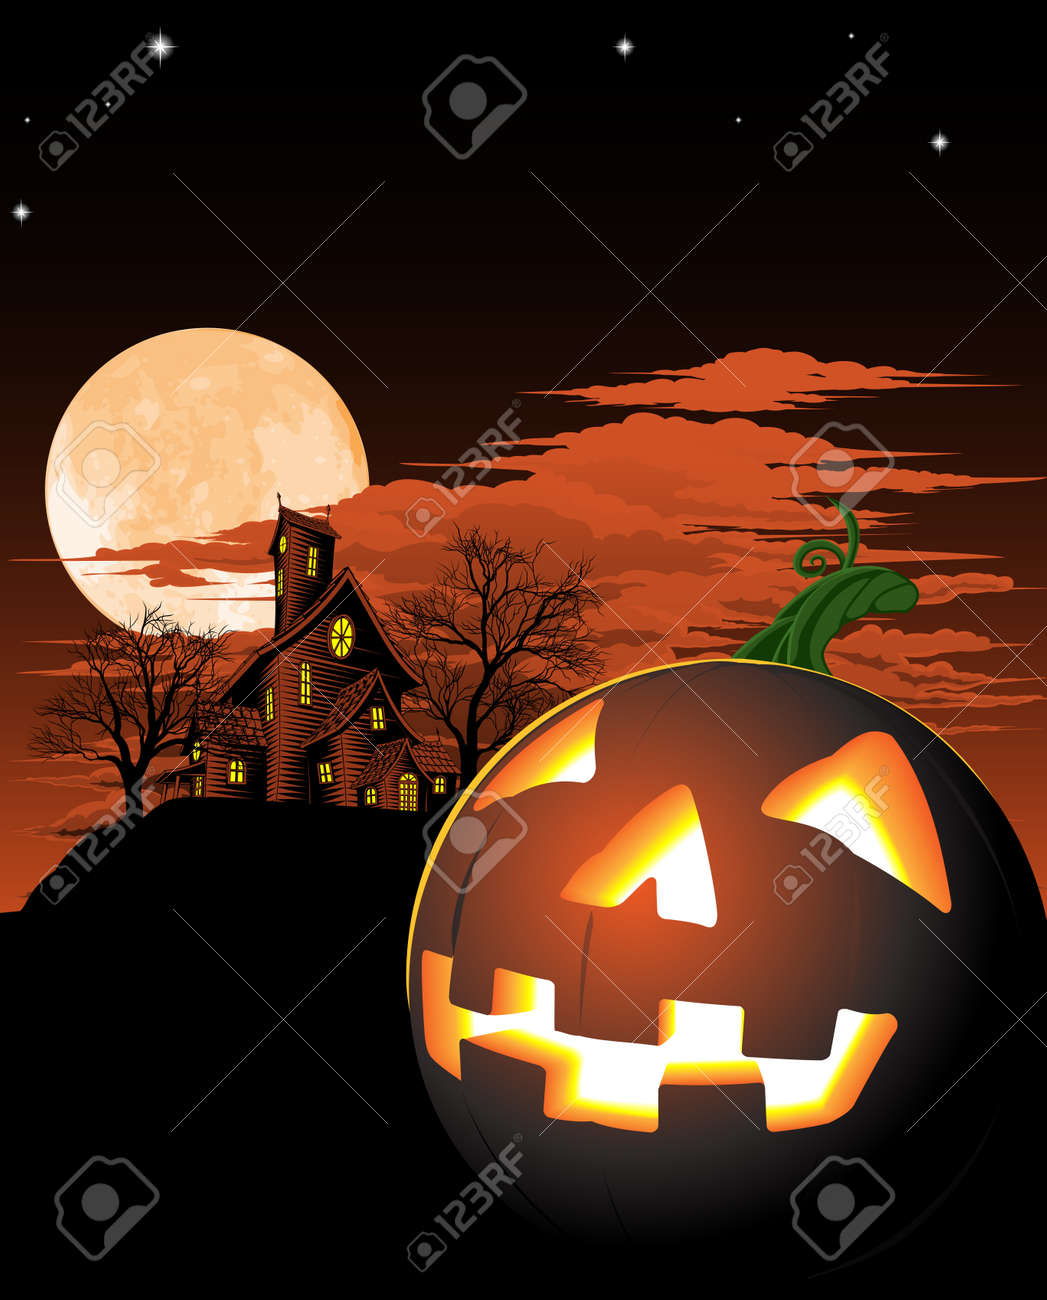 A haunted house and pumpkin Halloween background Stock Vector - 10318154